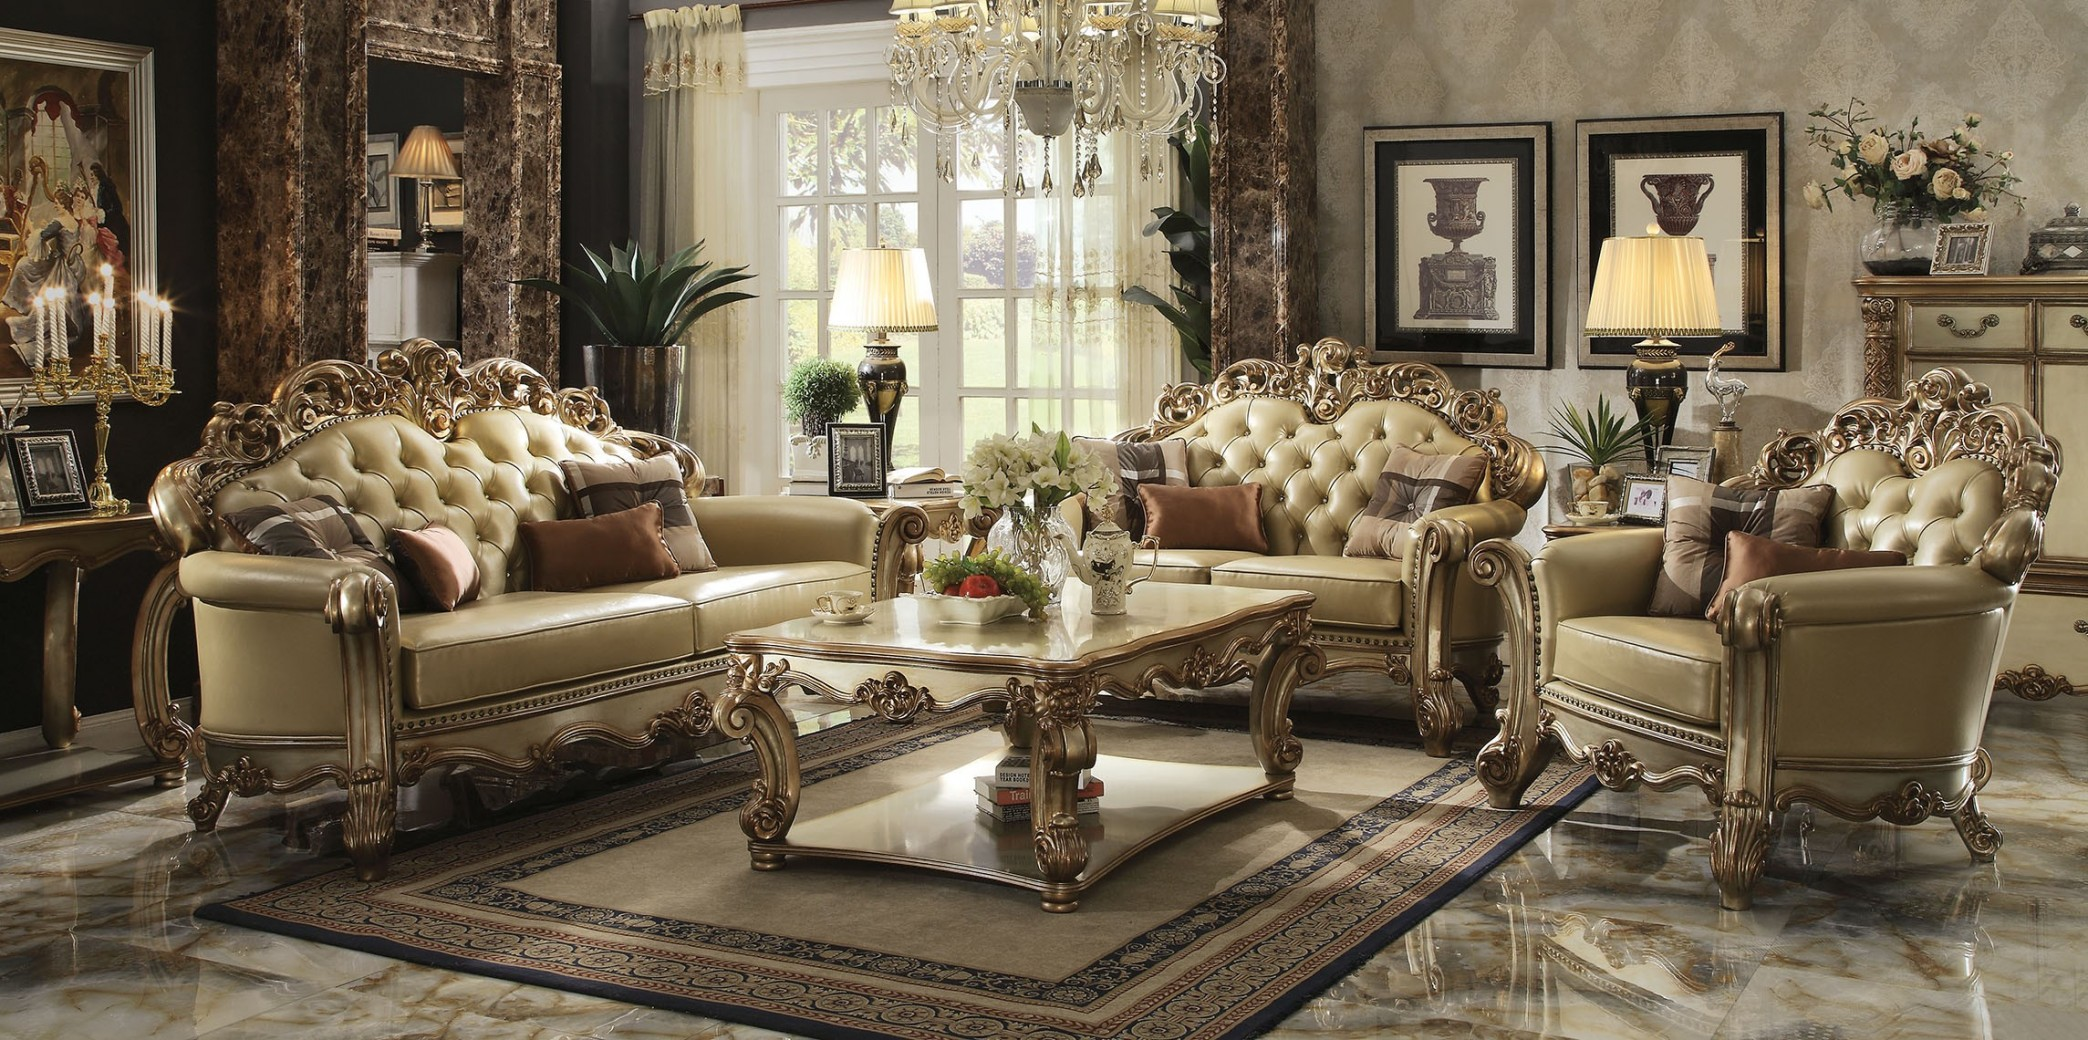 Acme Vendome Living room Collection Gold Patina Finish